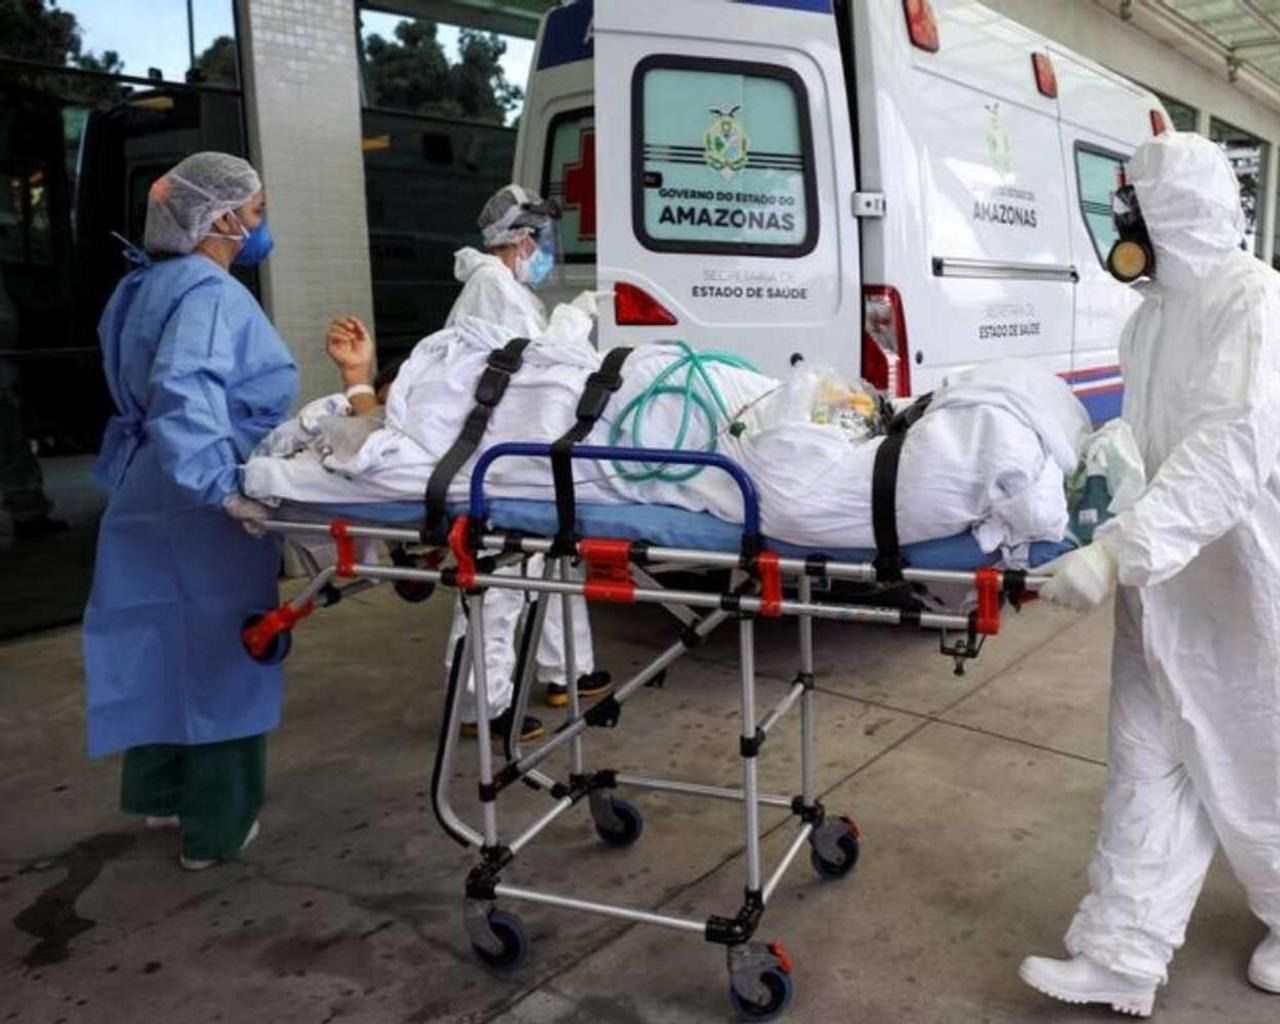 With more than 2,000 deaths a day, Brazil suffers a severe health collapse